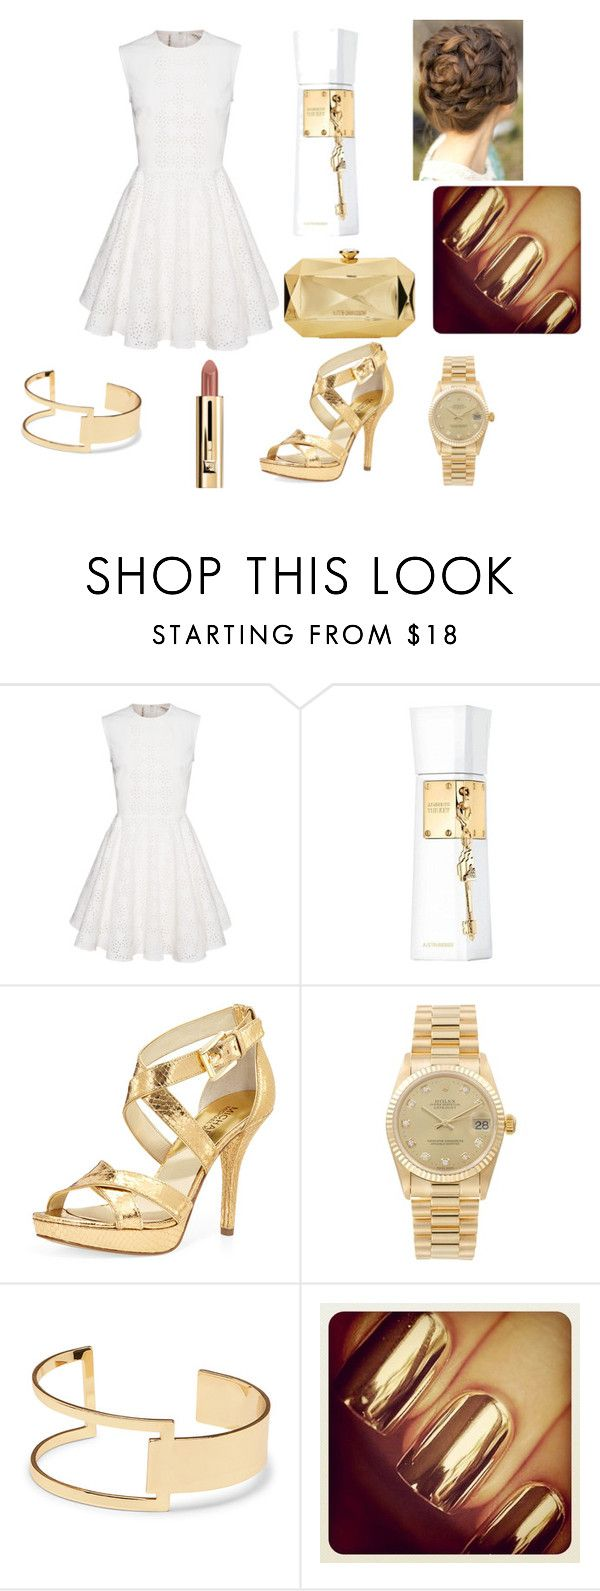 """Untitled #21"" by maya-1999s on Polyvore featuring Justin Bieber, MICHAEL Michael Kors, Rolex, Sole Society and Love Moschino"